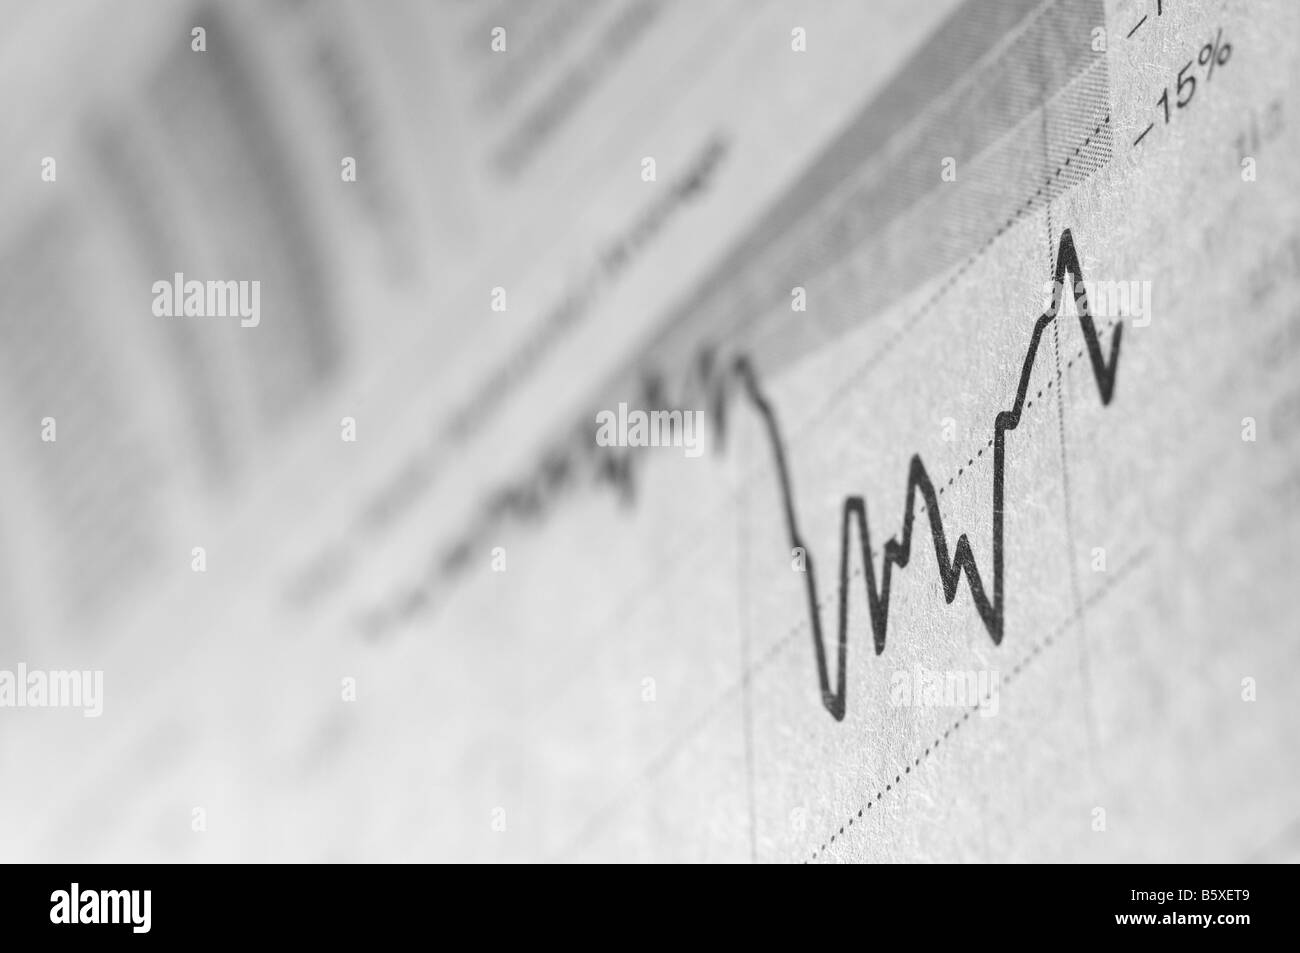 The financial business section of a newspaper. - Stock Image